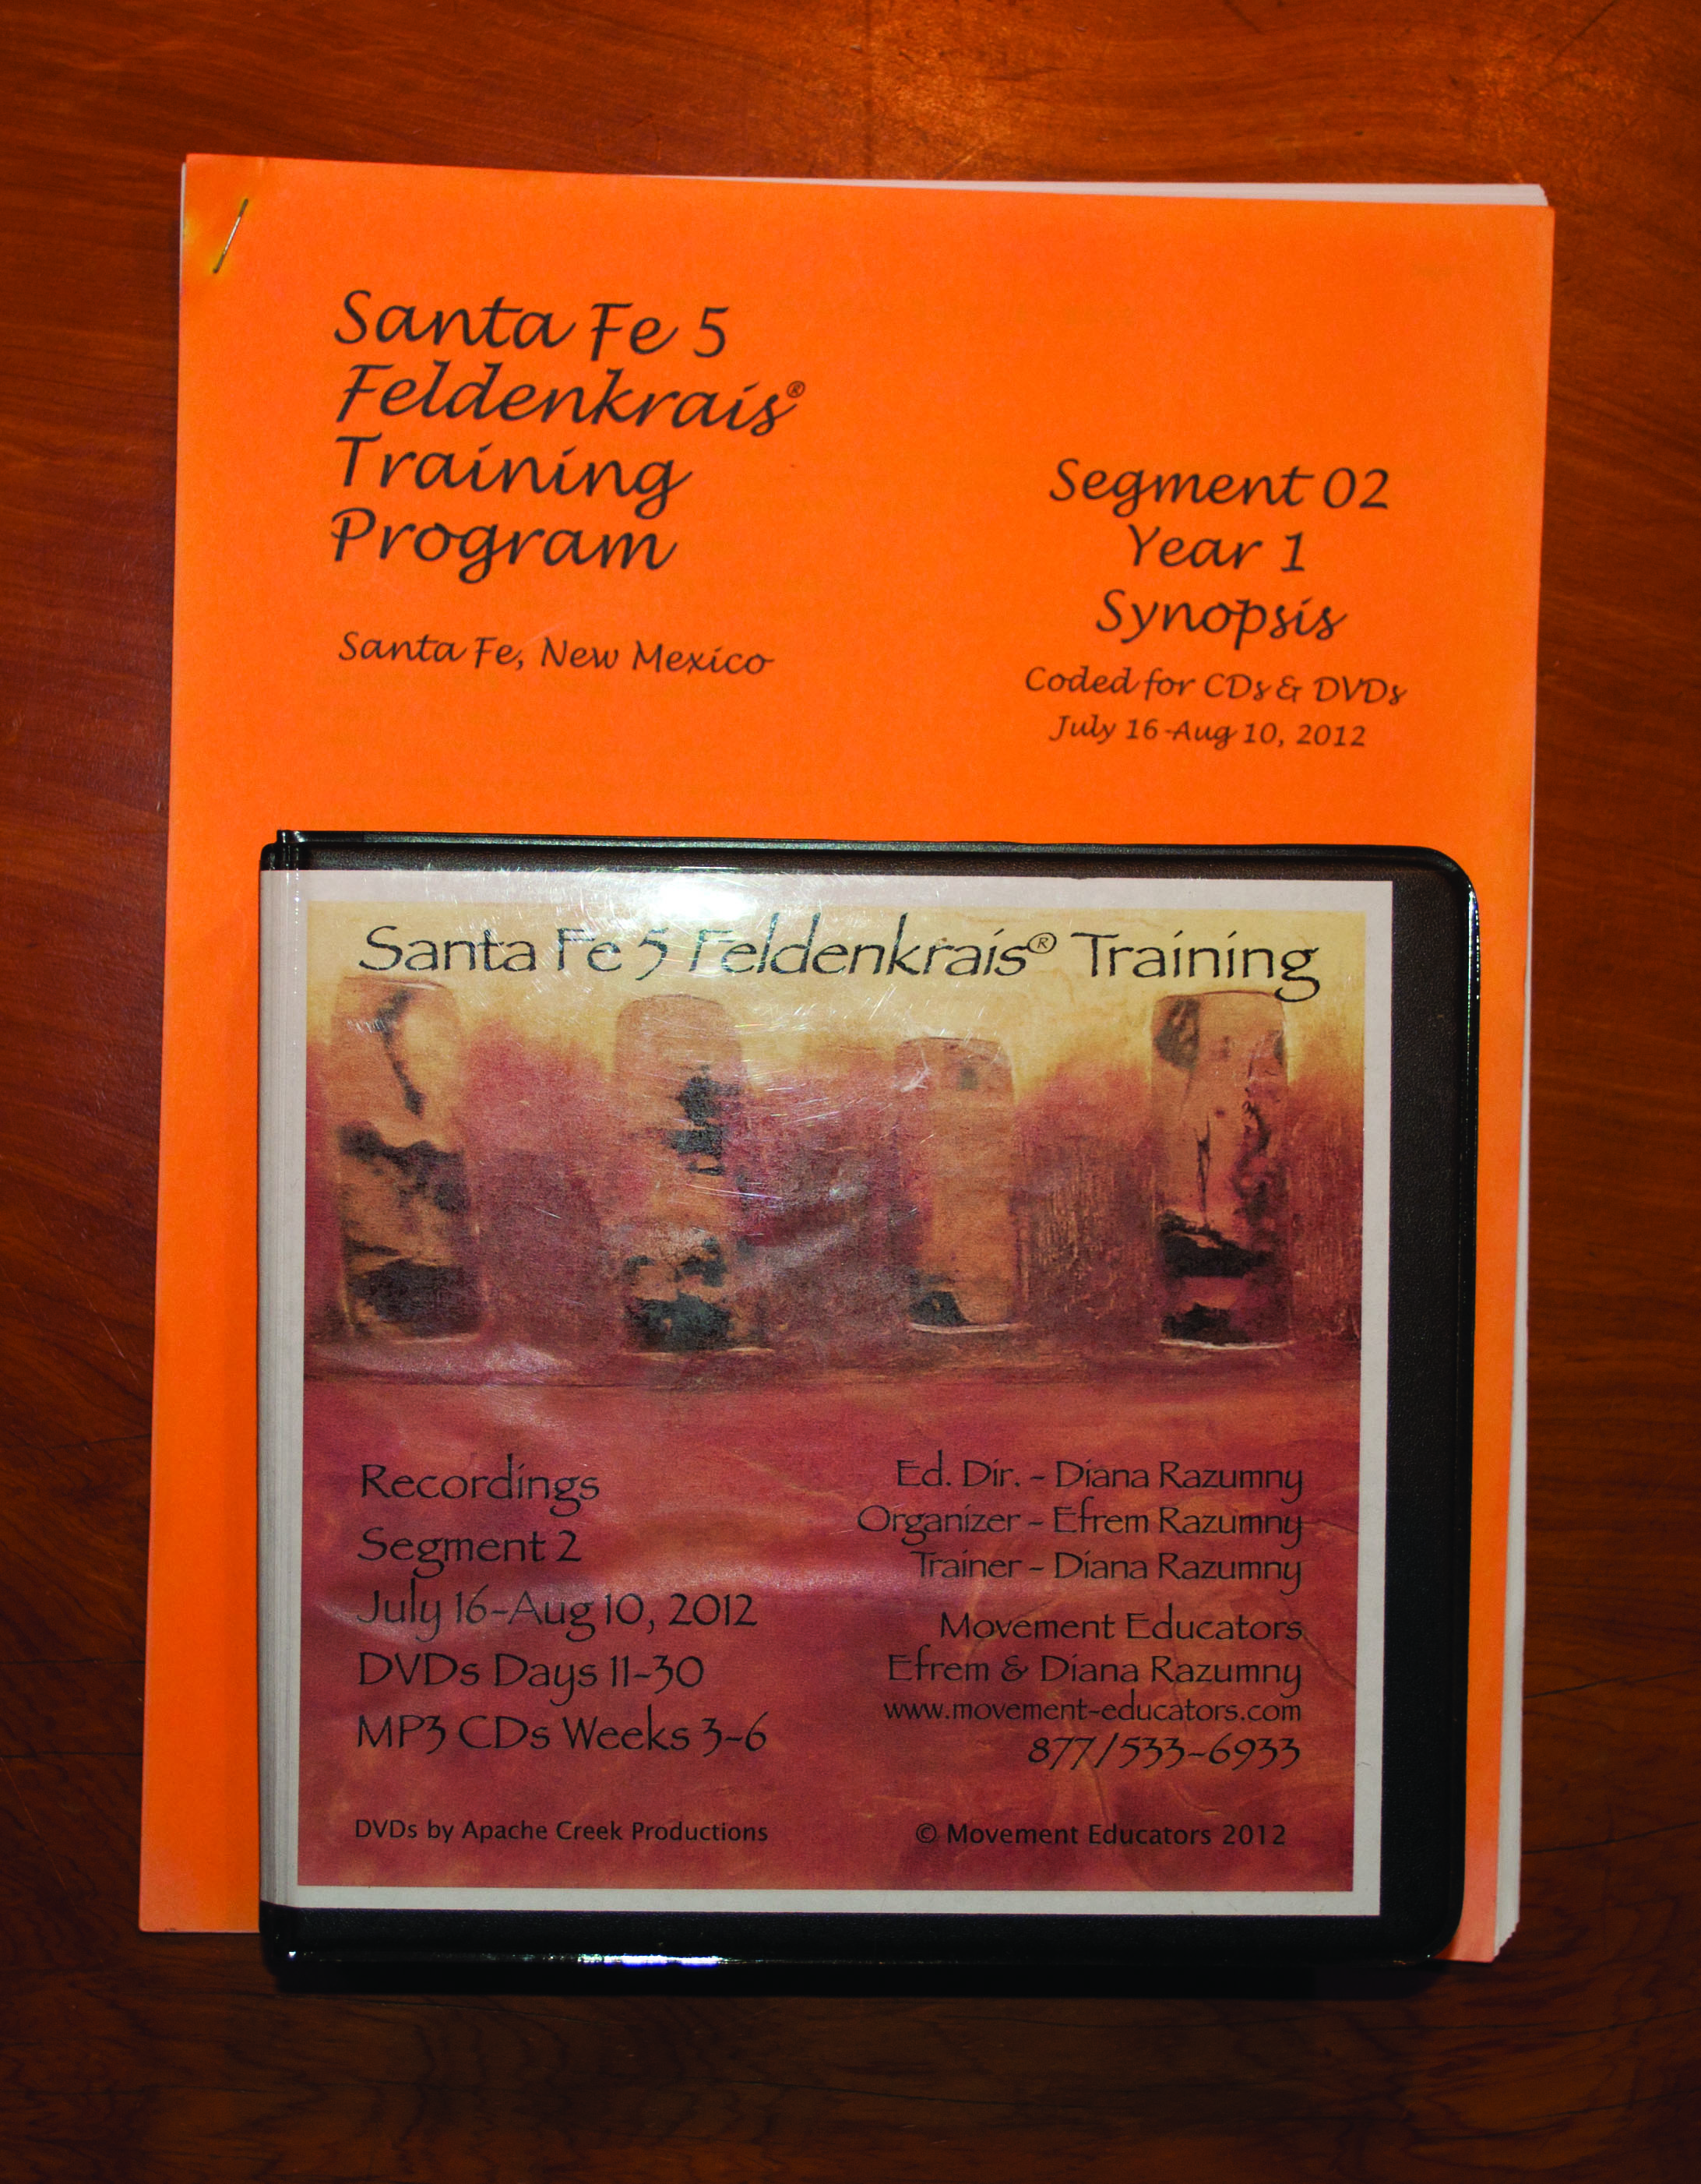 Santa Fe 5 Segment 02/Year 1; Complete DVD & MP3 CD Recordings